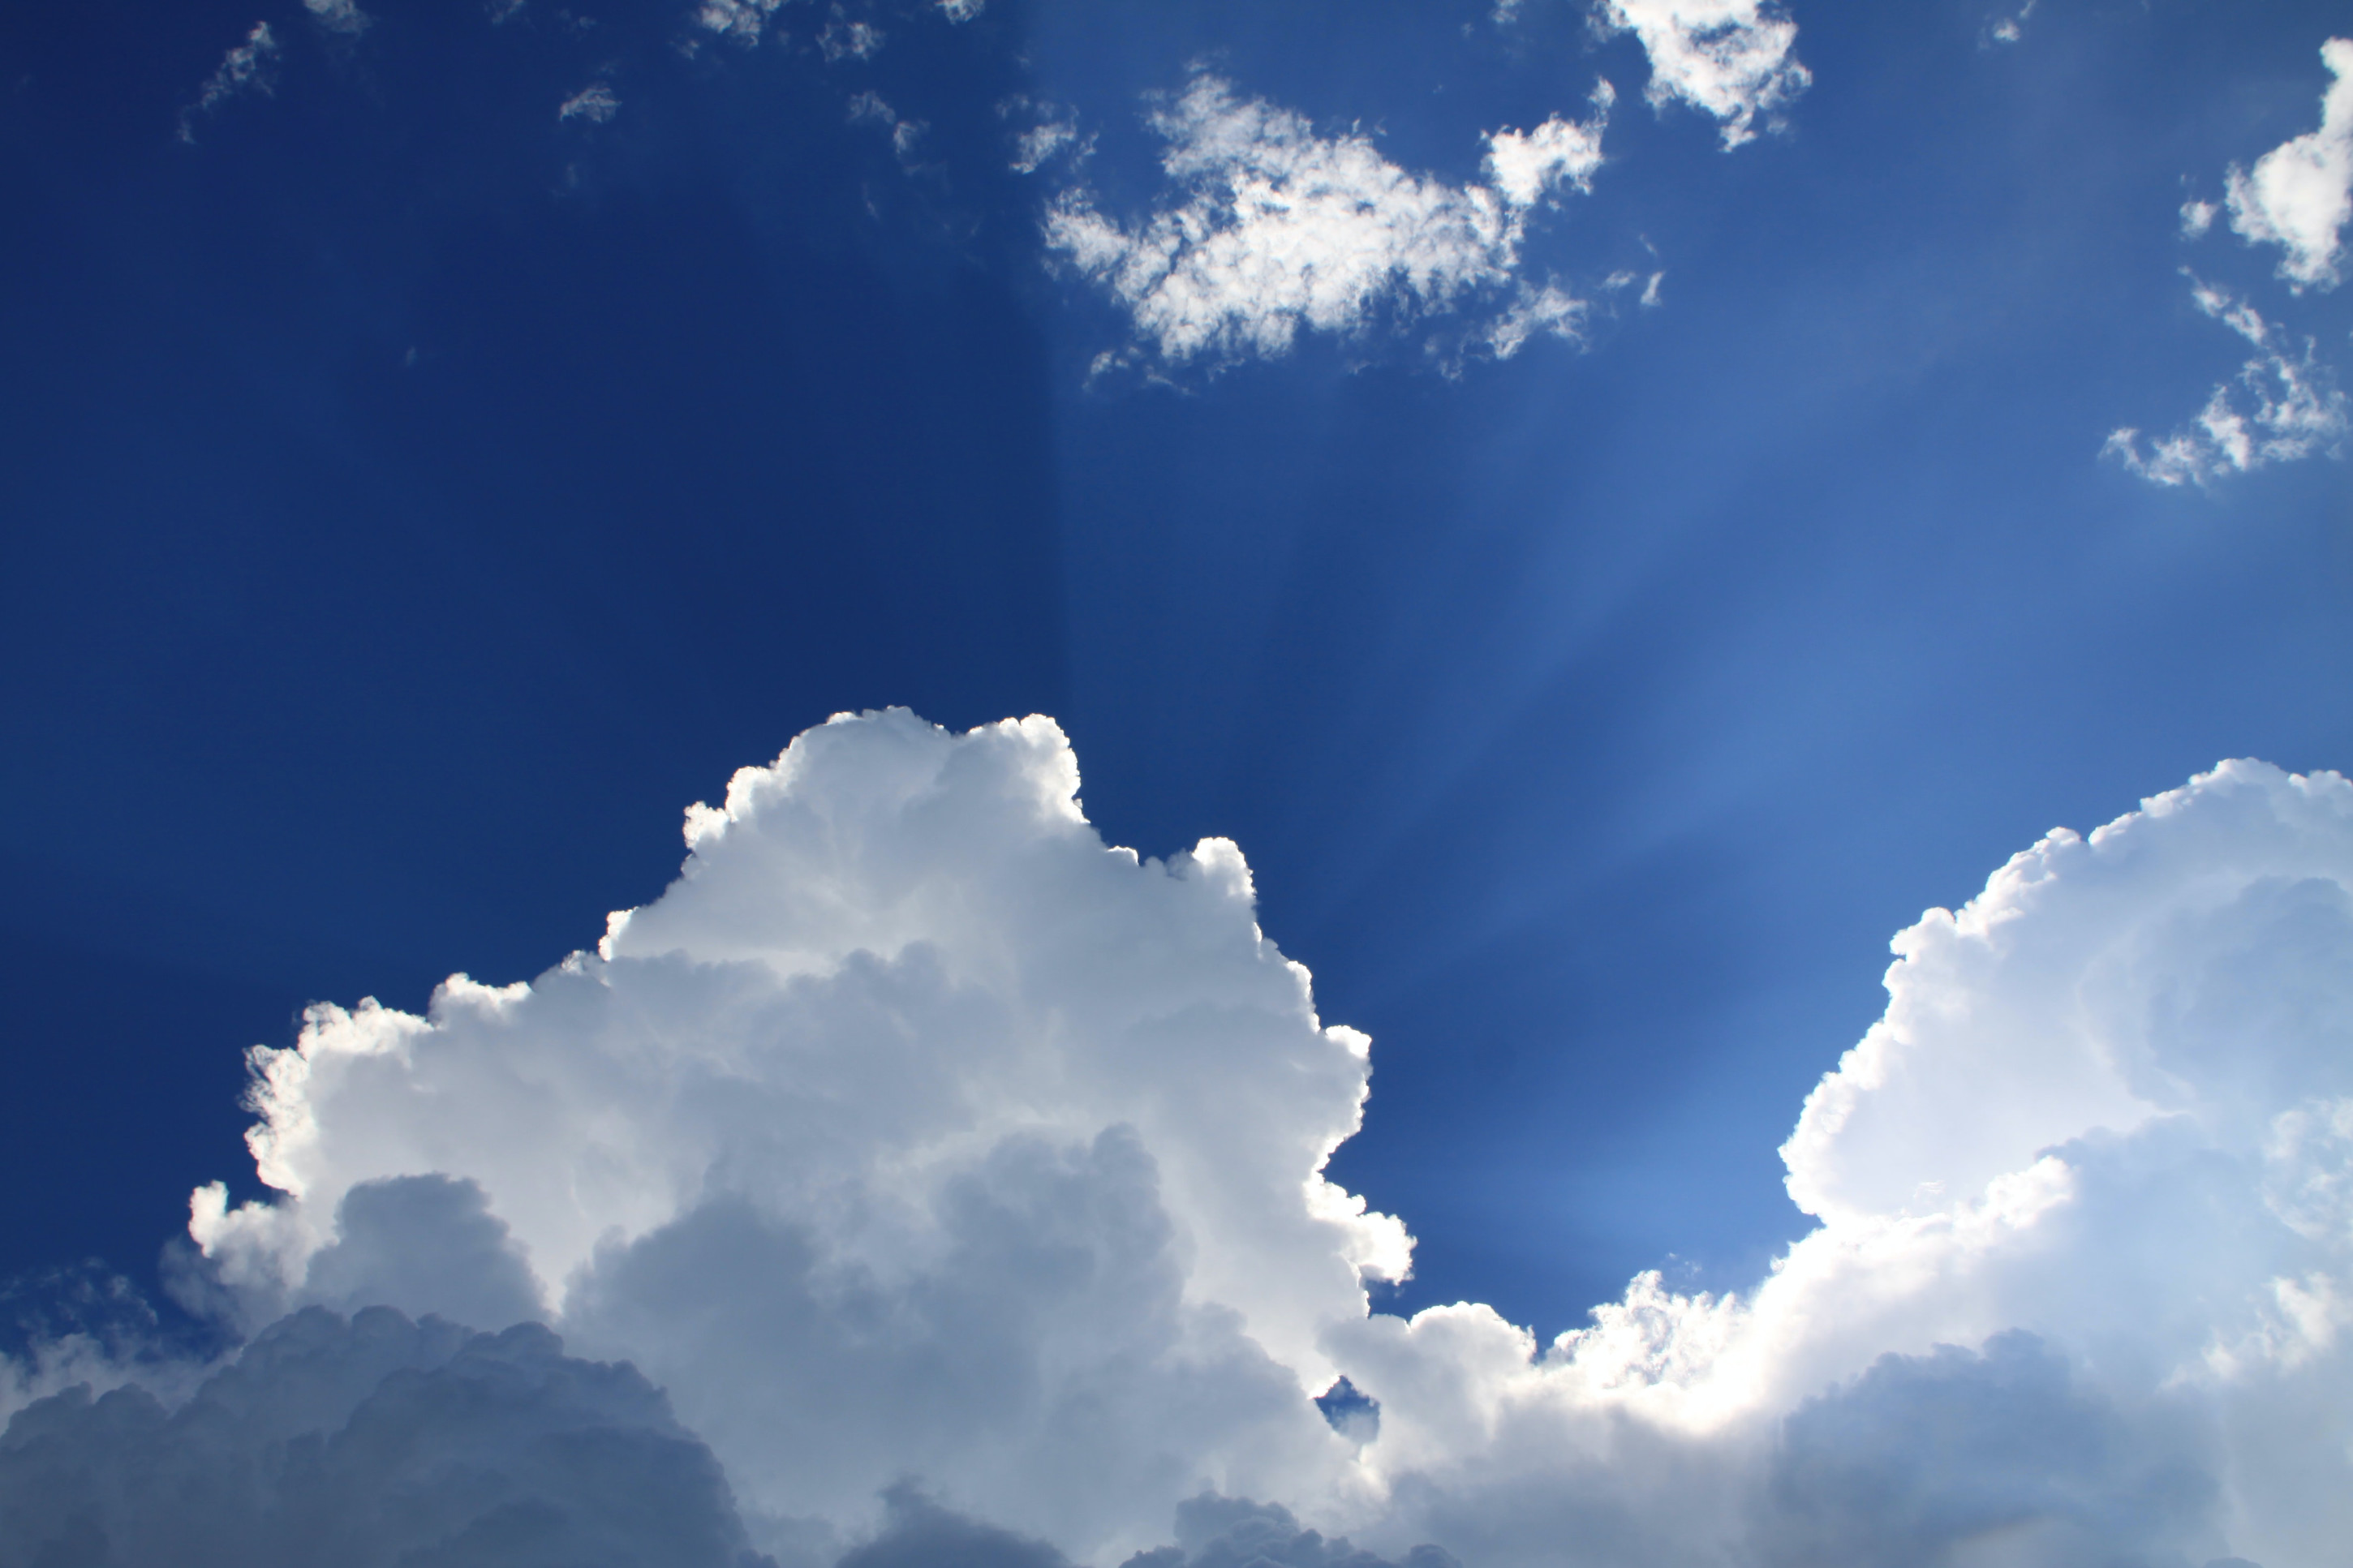 An image of some clouds on a blue sky representing the ResNet Cloud Initiatives